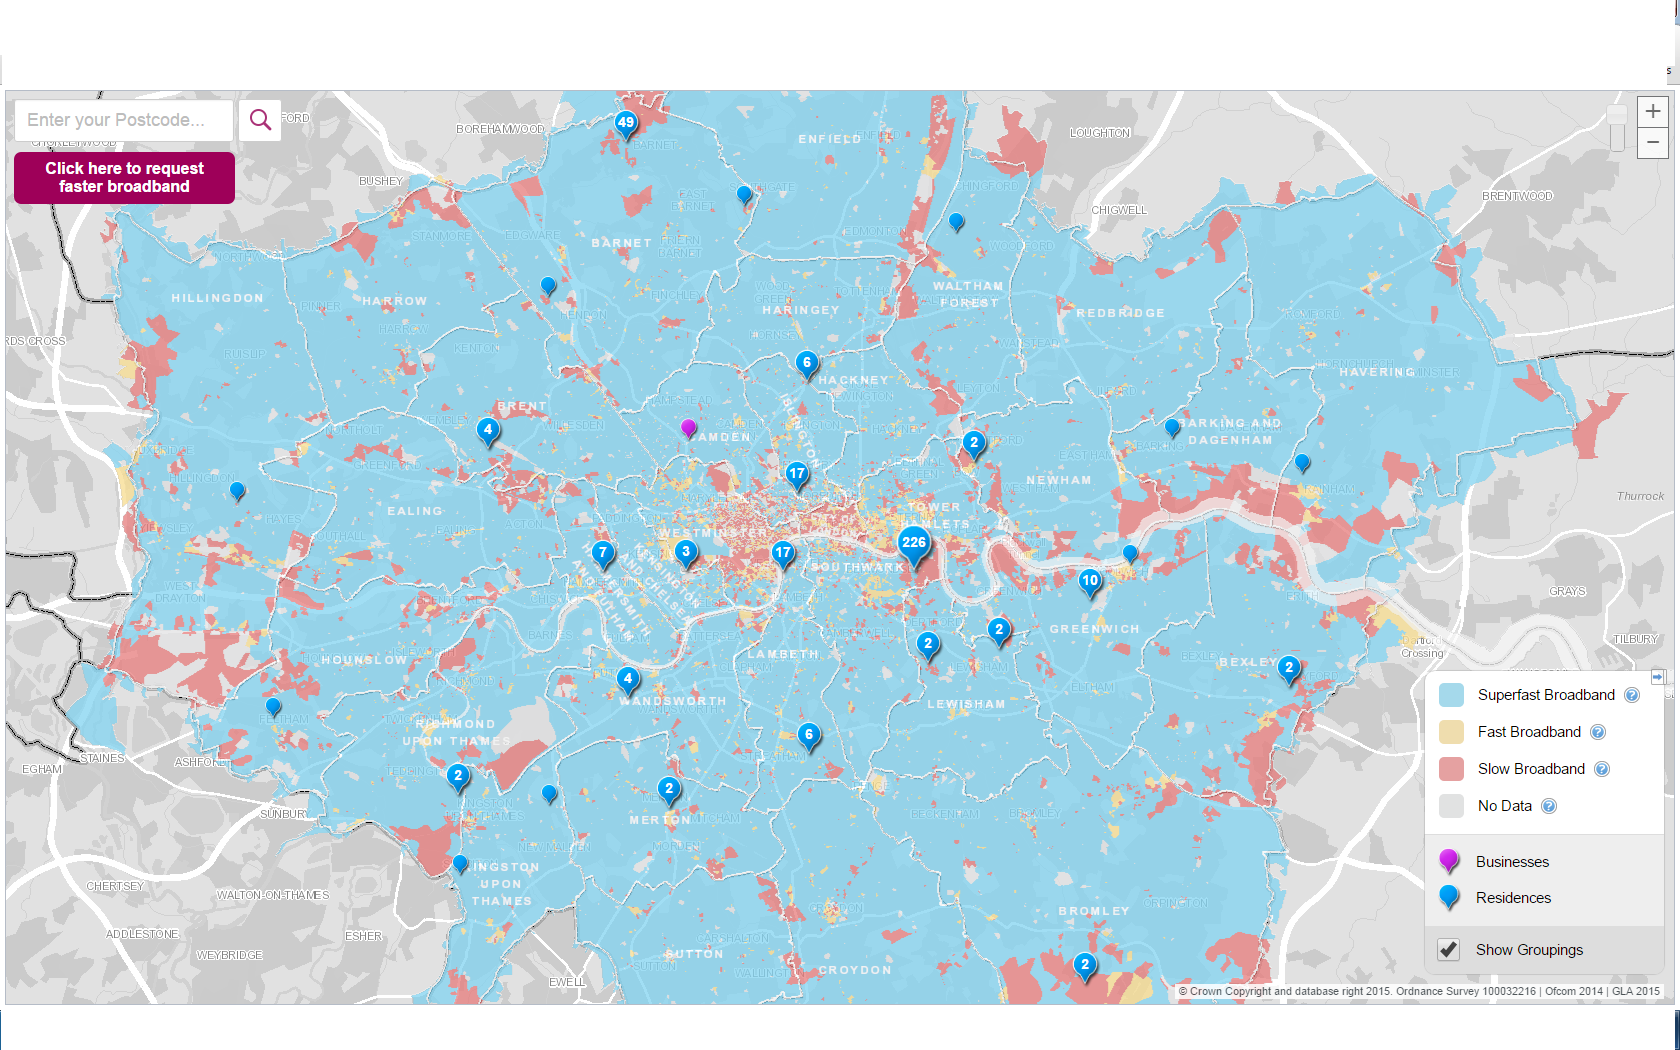 The Greater London Authority Has Published An Interactive Connectivity Map Showing London S Broadband Coverage We Will Be Working With The Gla S Notspots